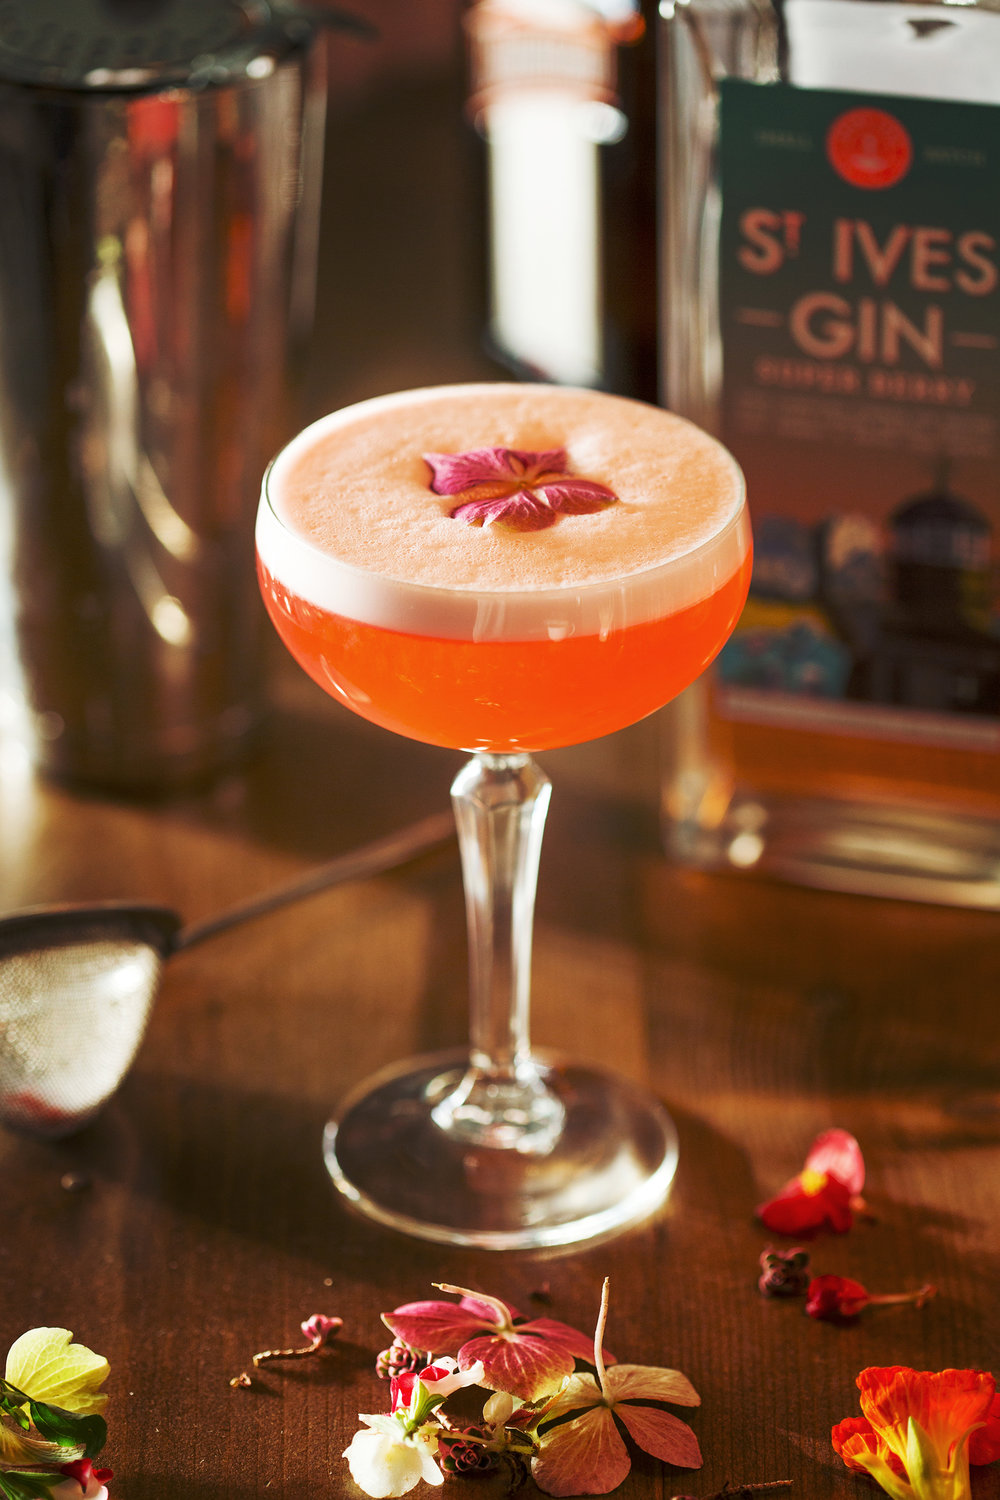 Super Pink Lady Cocktail with St Ives Super Berry Gin